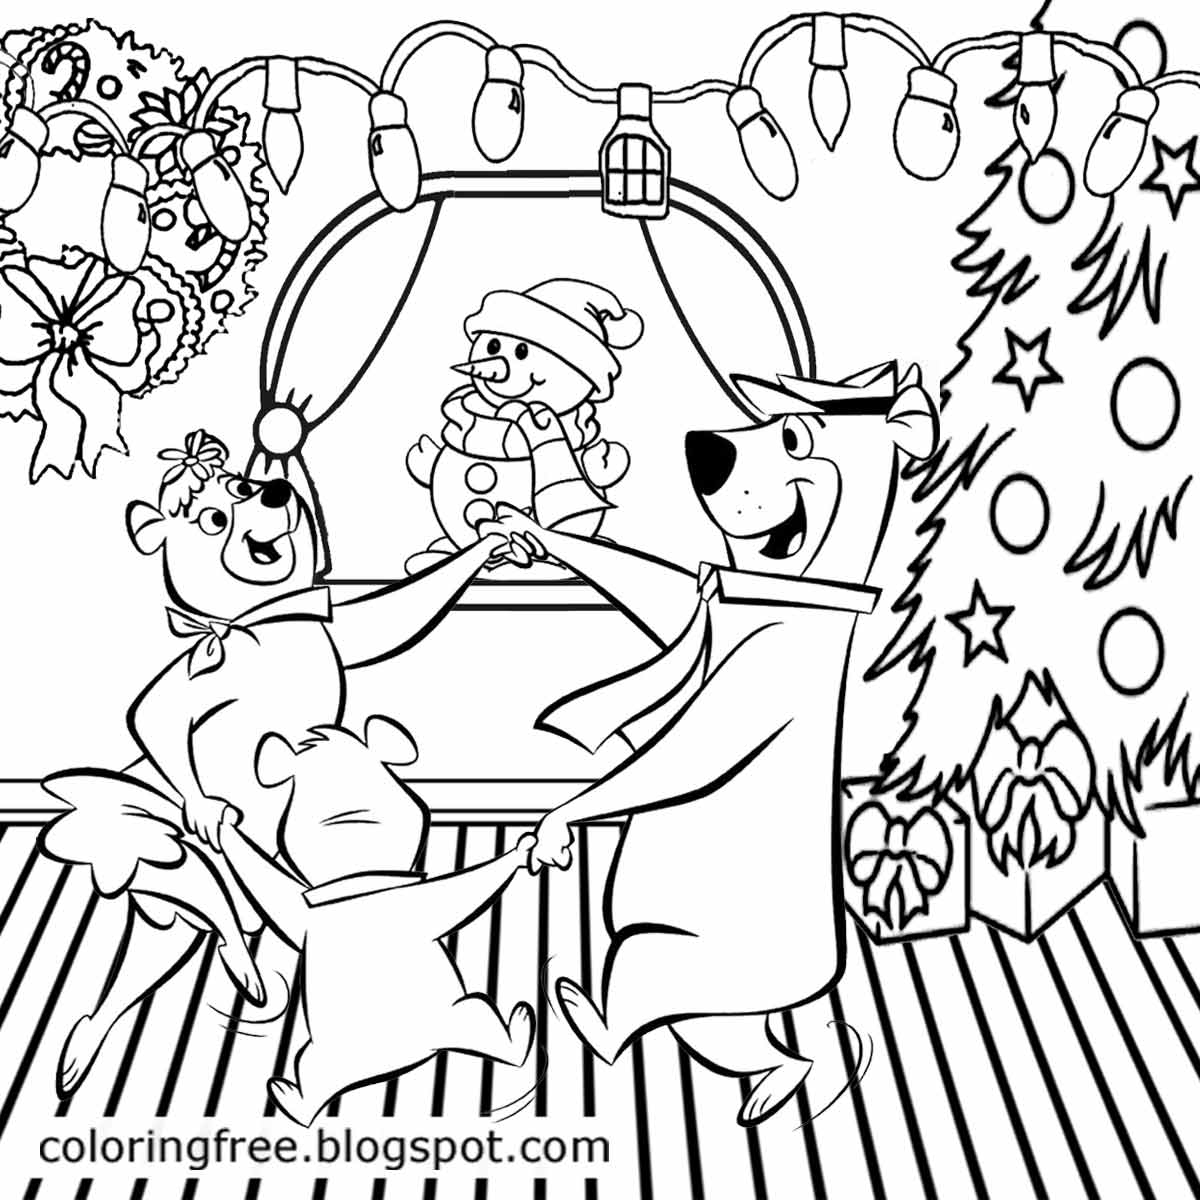 Yogi Bear Coloring Page Free Coloring Pages Printable Pictures To Color Kids Drawing Ideas